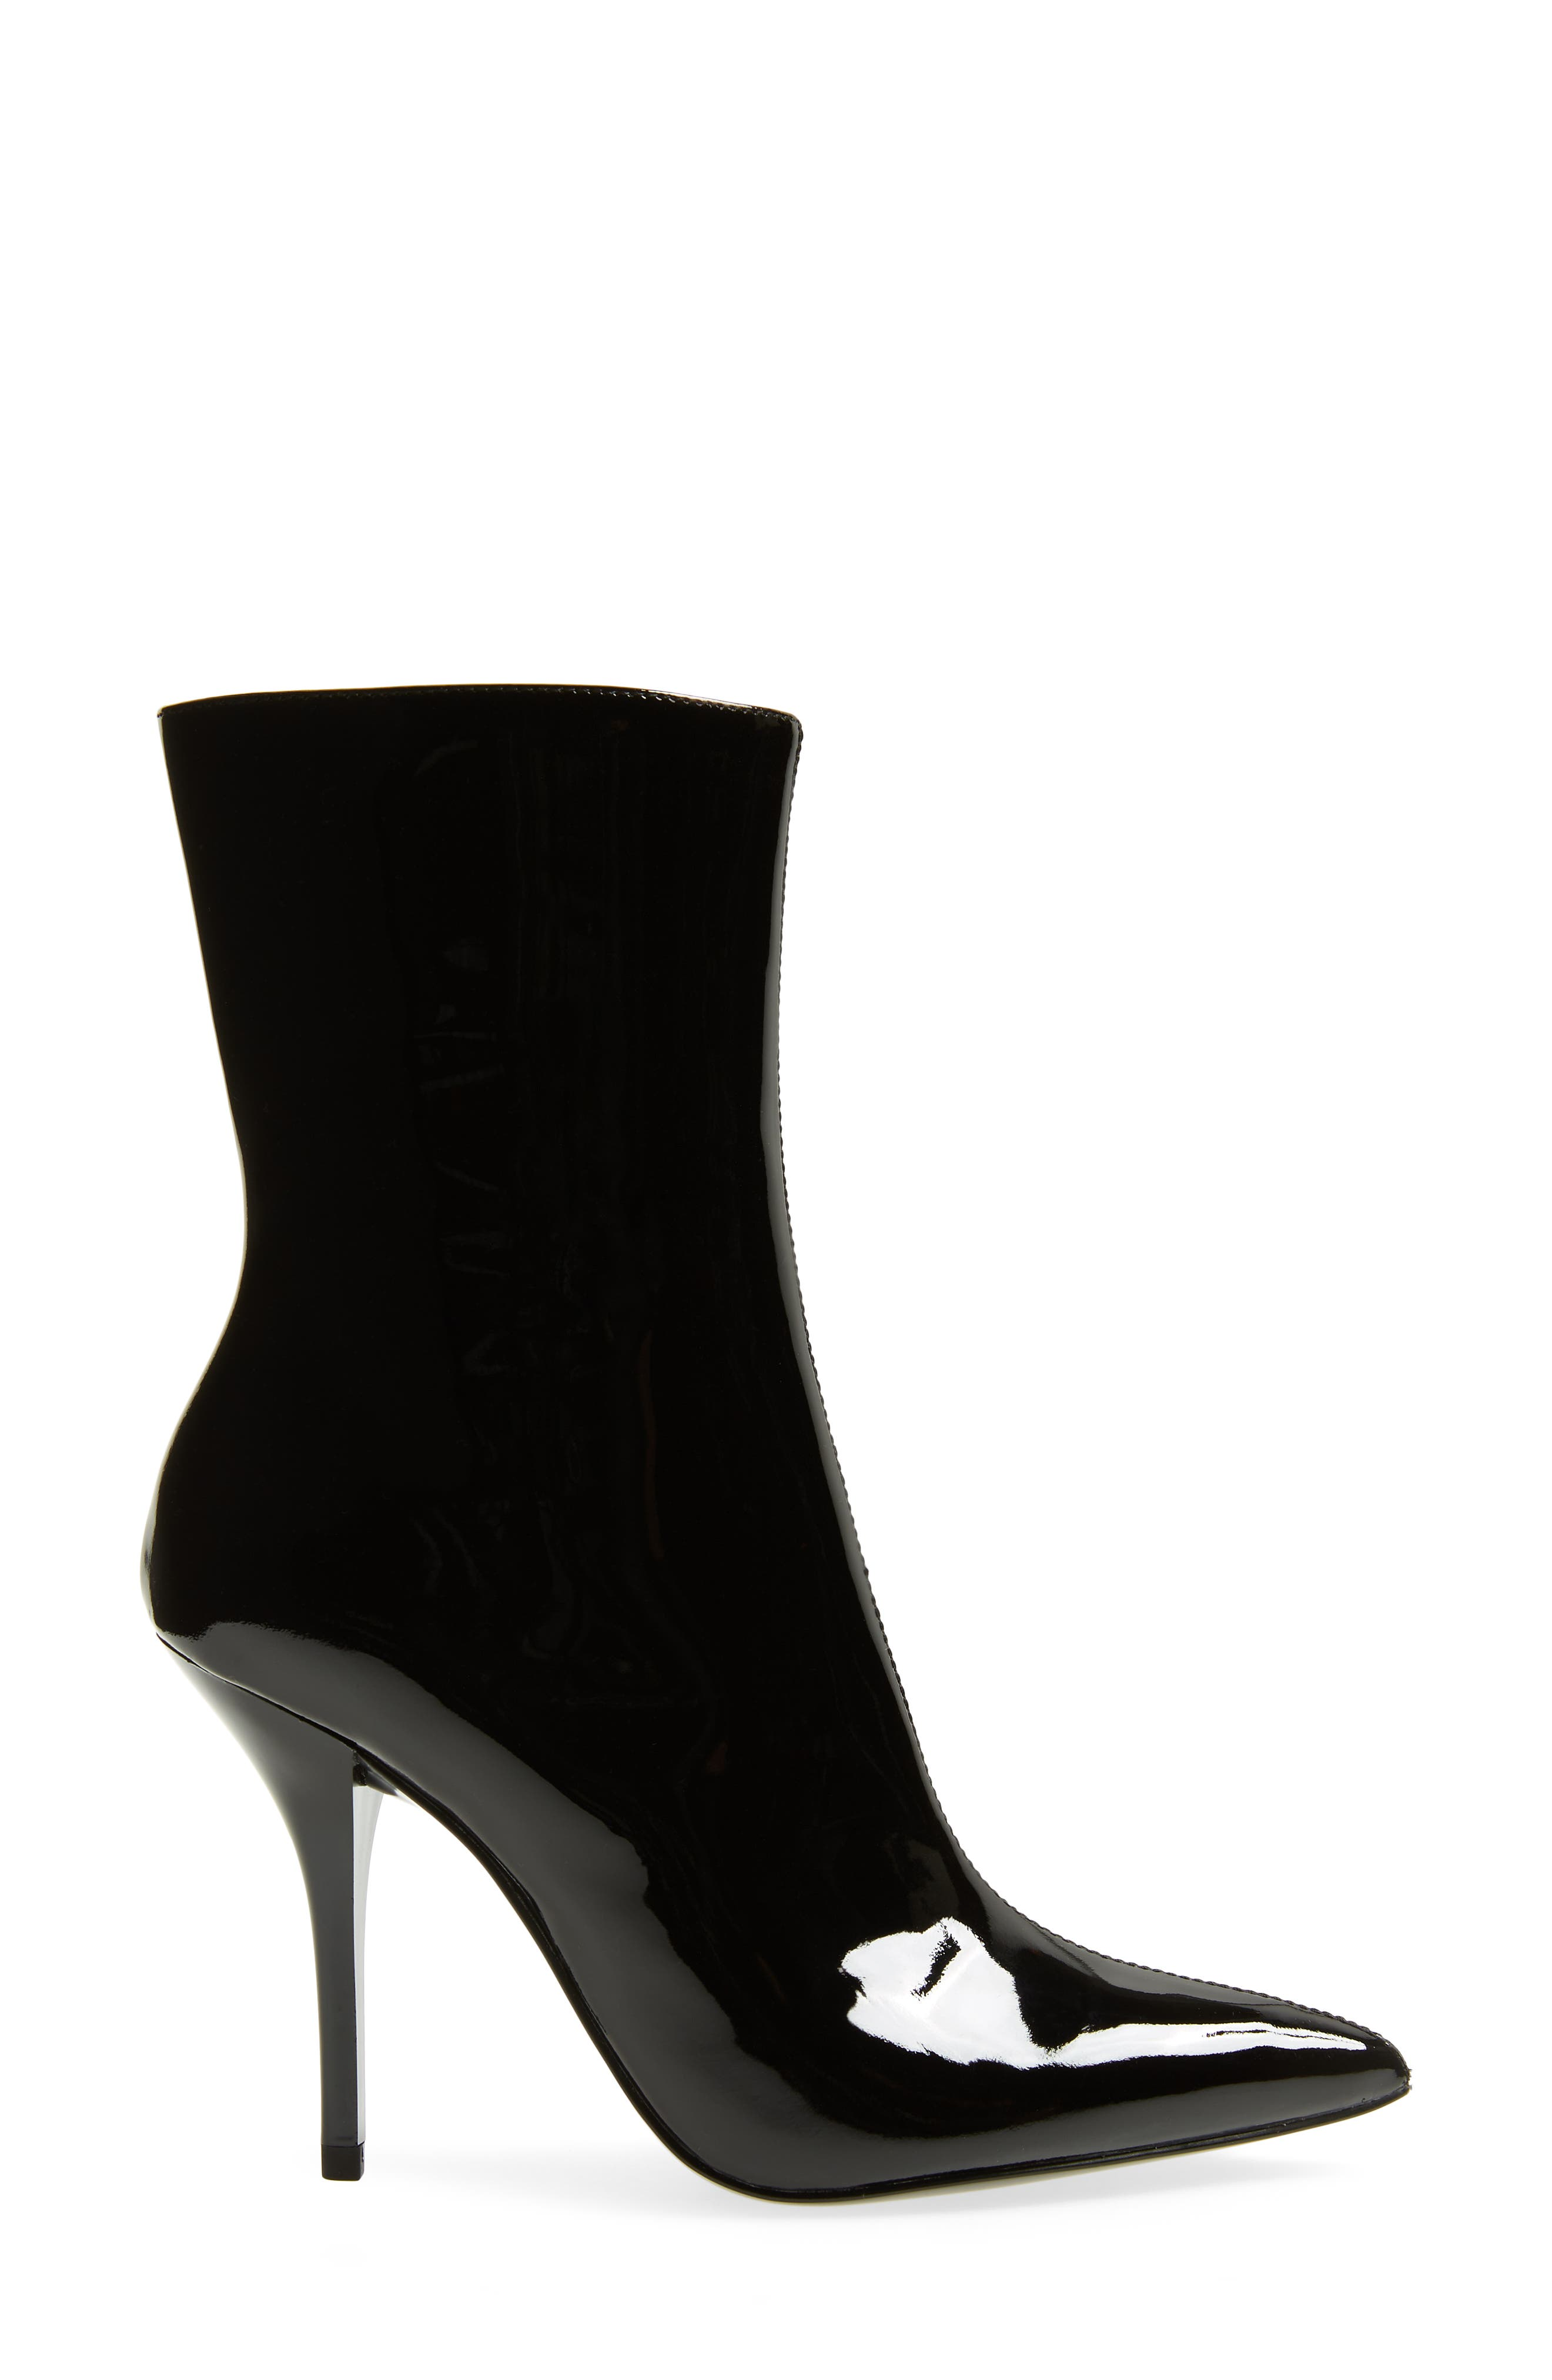 Mada Bootie,                             Alternate thumbnail 3, color,                             BLACK PATENT LEATHER